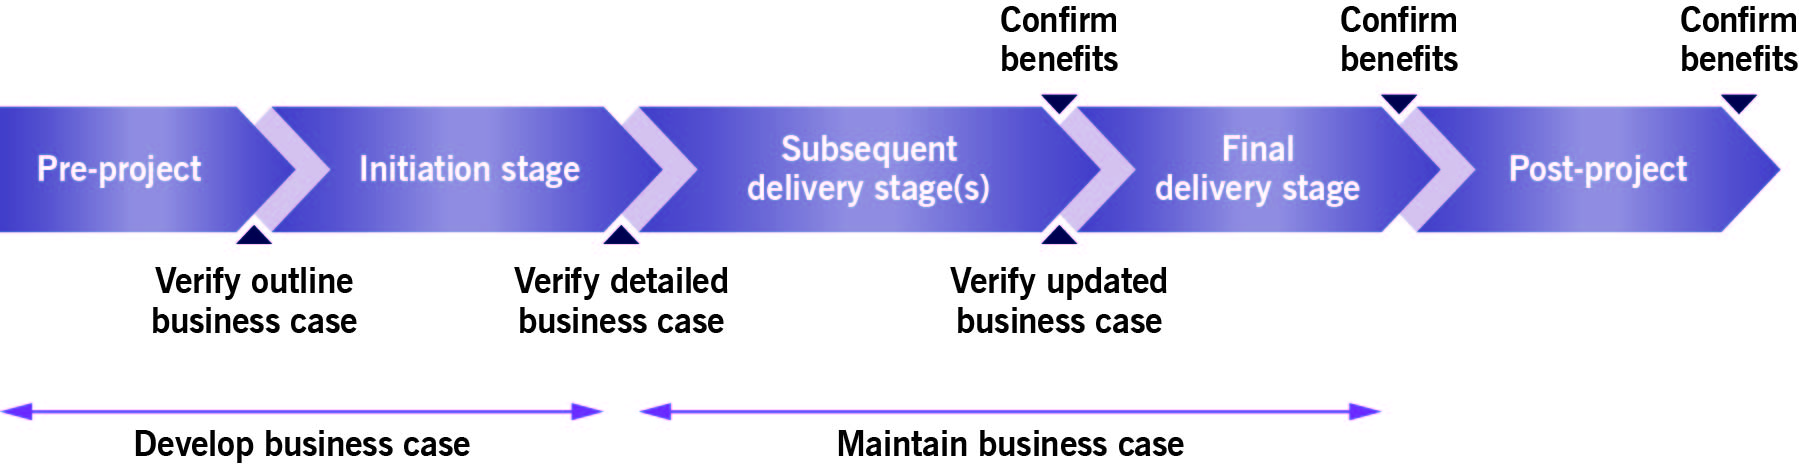 PRINCE2_development path Business Case